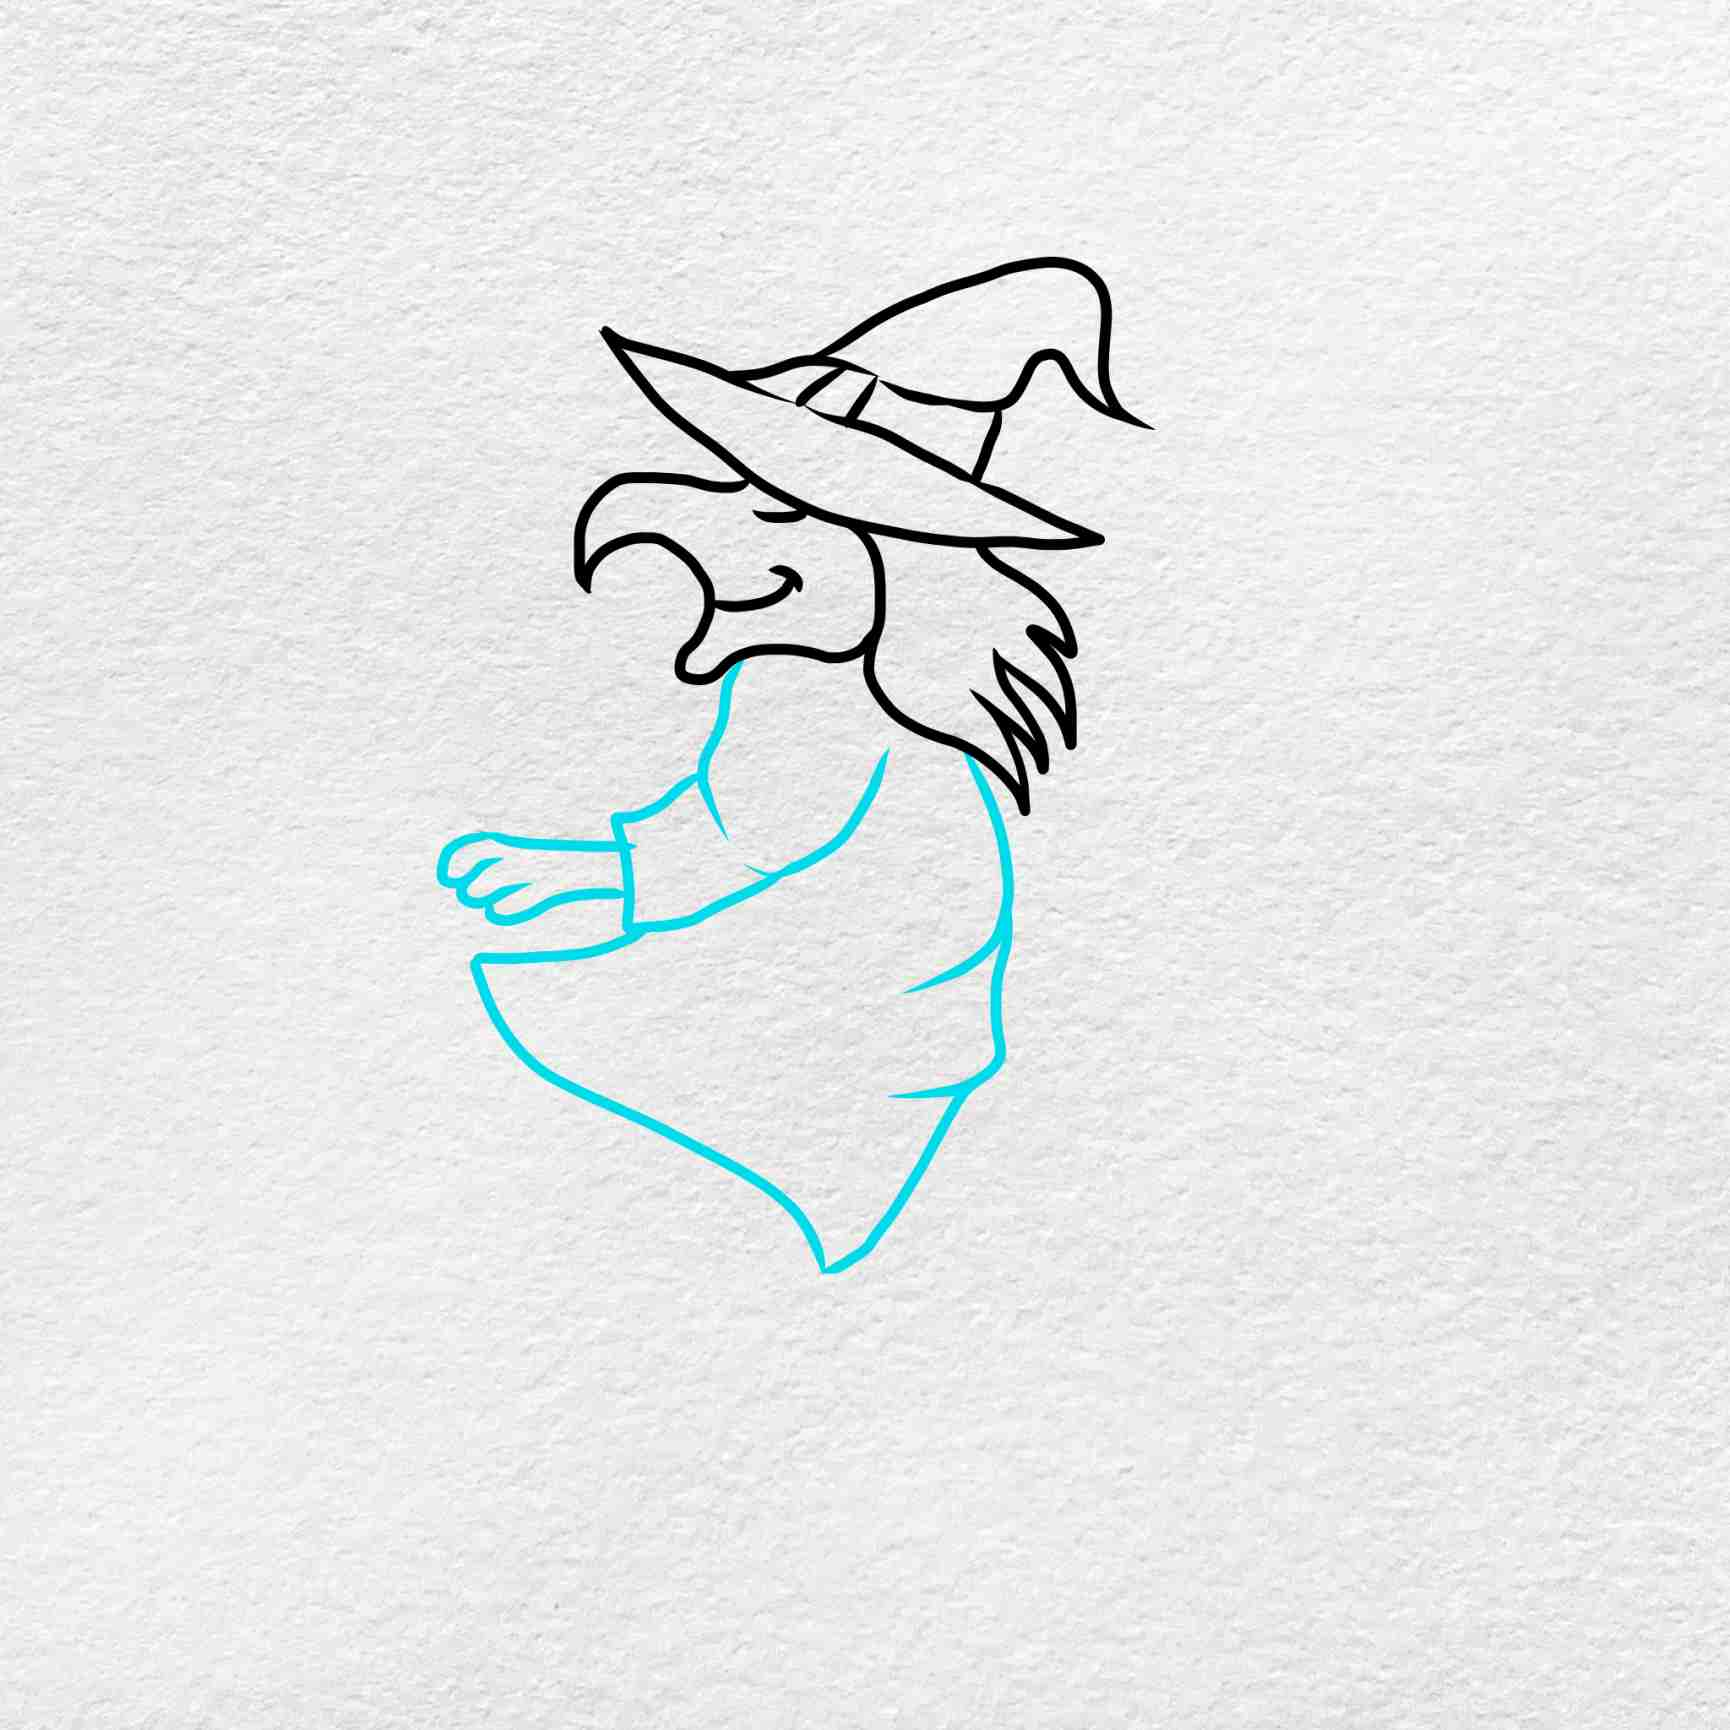 Easy Witch Drawing: Step 3